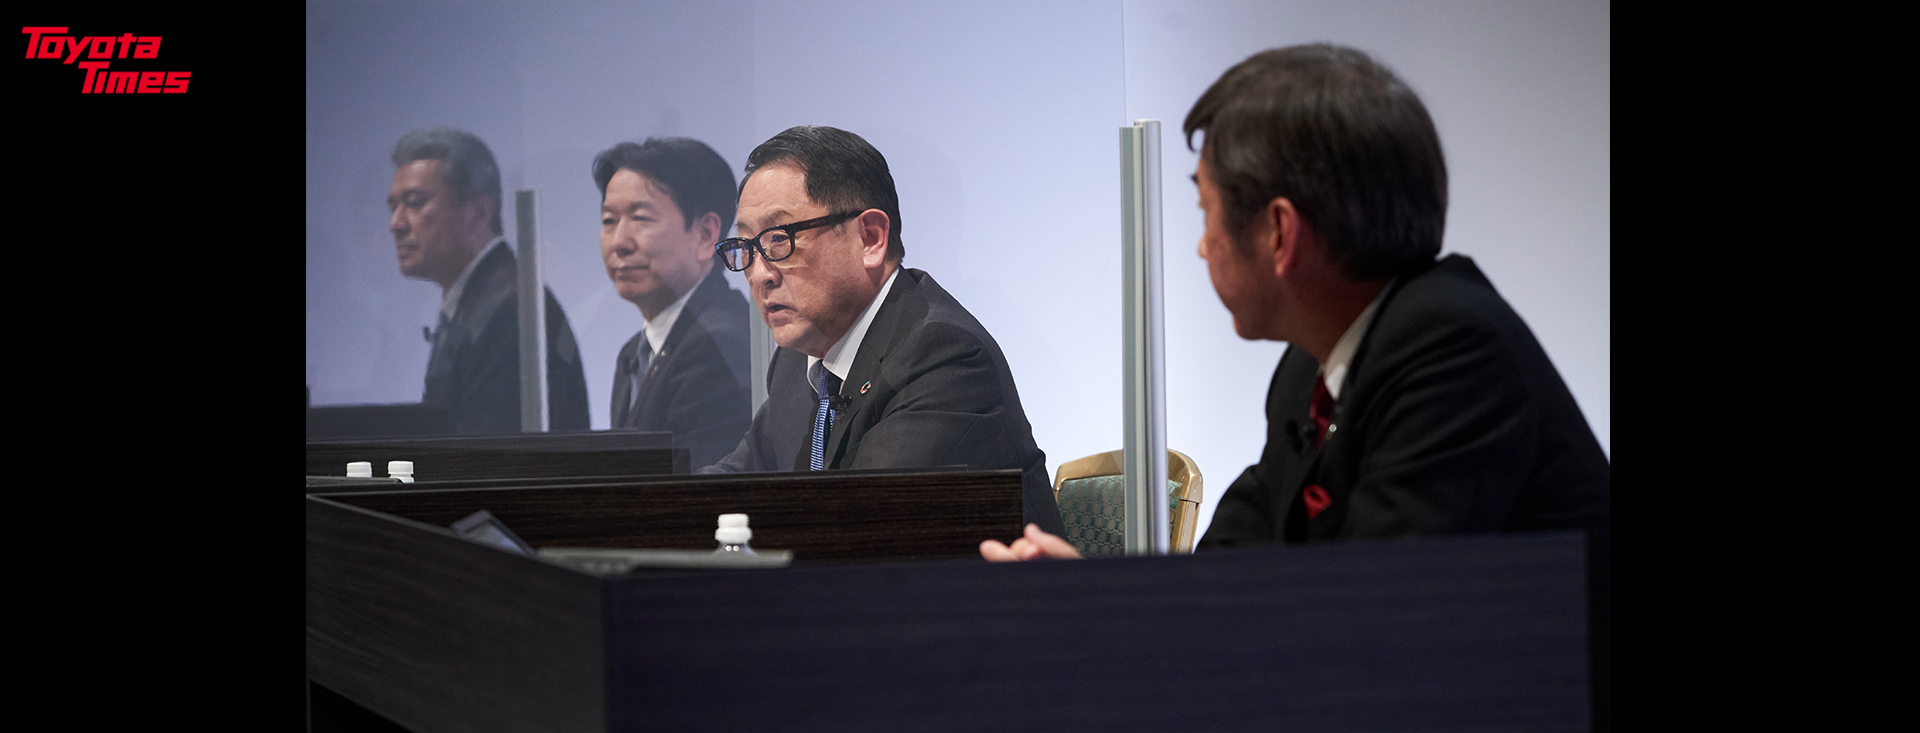 CEOs on Why Toyota, Isuzu, and Hino Formed CASE Partnership